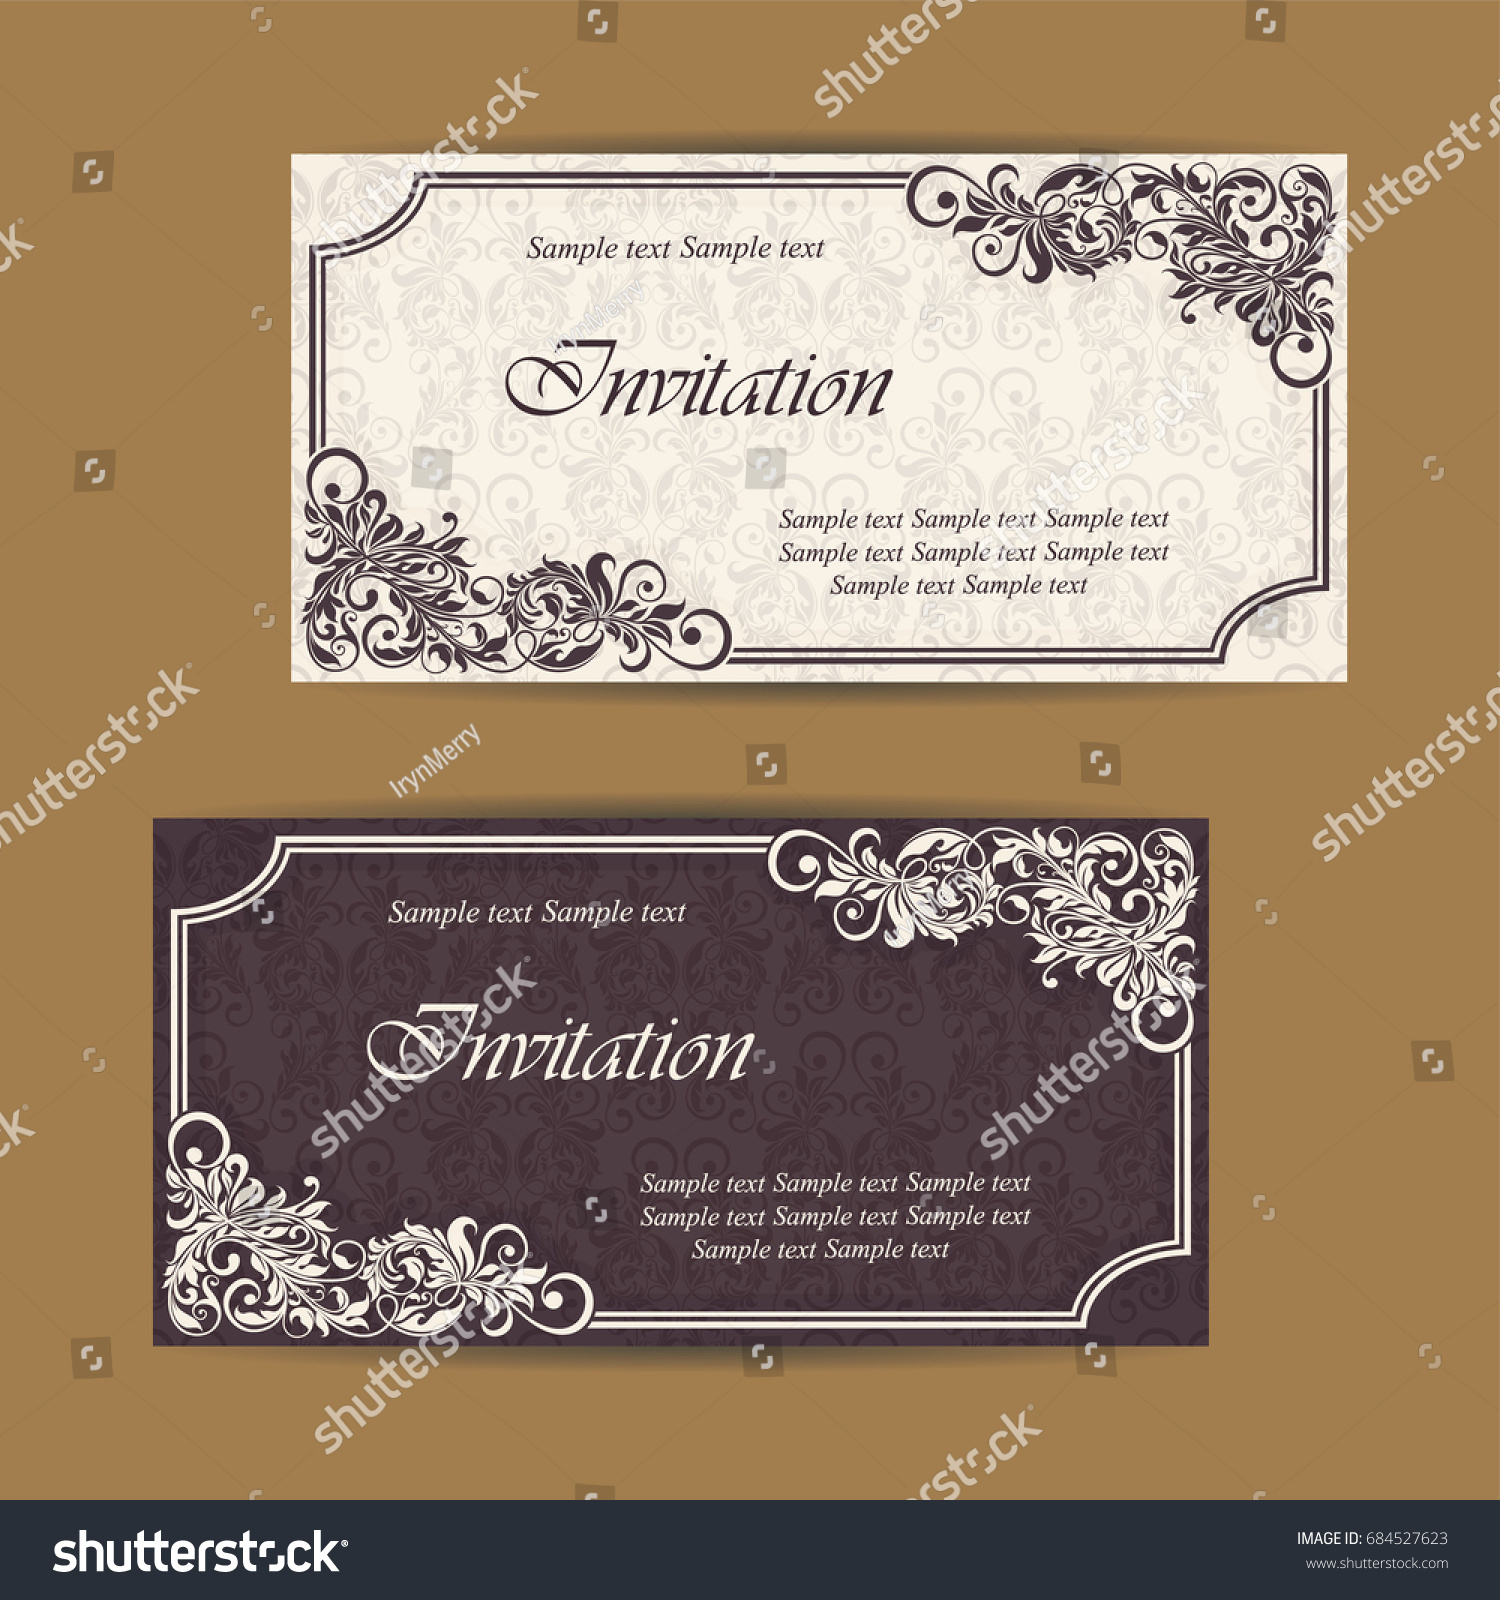 30 Luxury Wedding Invitation Text Font Graphics Wedding Invitation